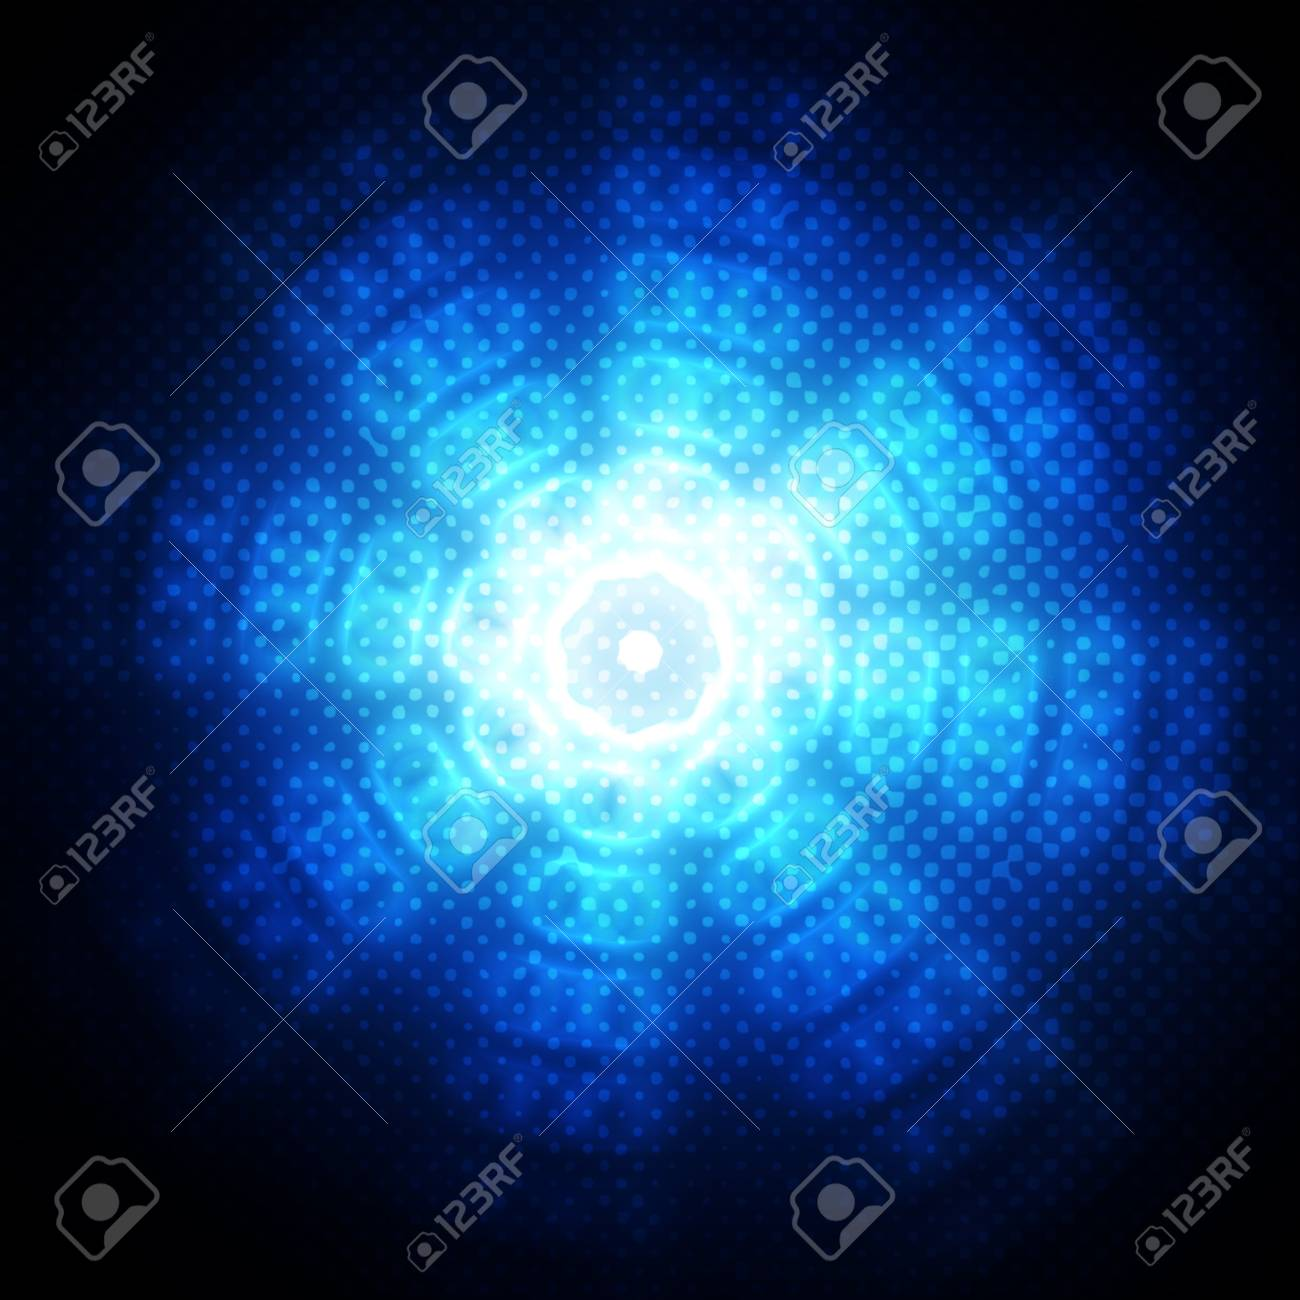 Abstract circles on blue background Stock Photo - 15665061